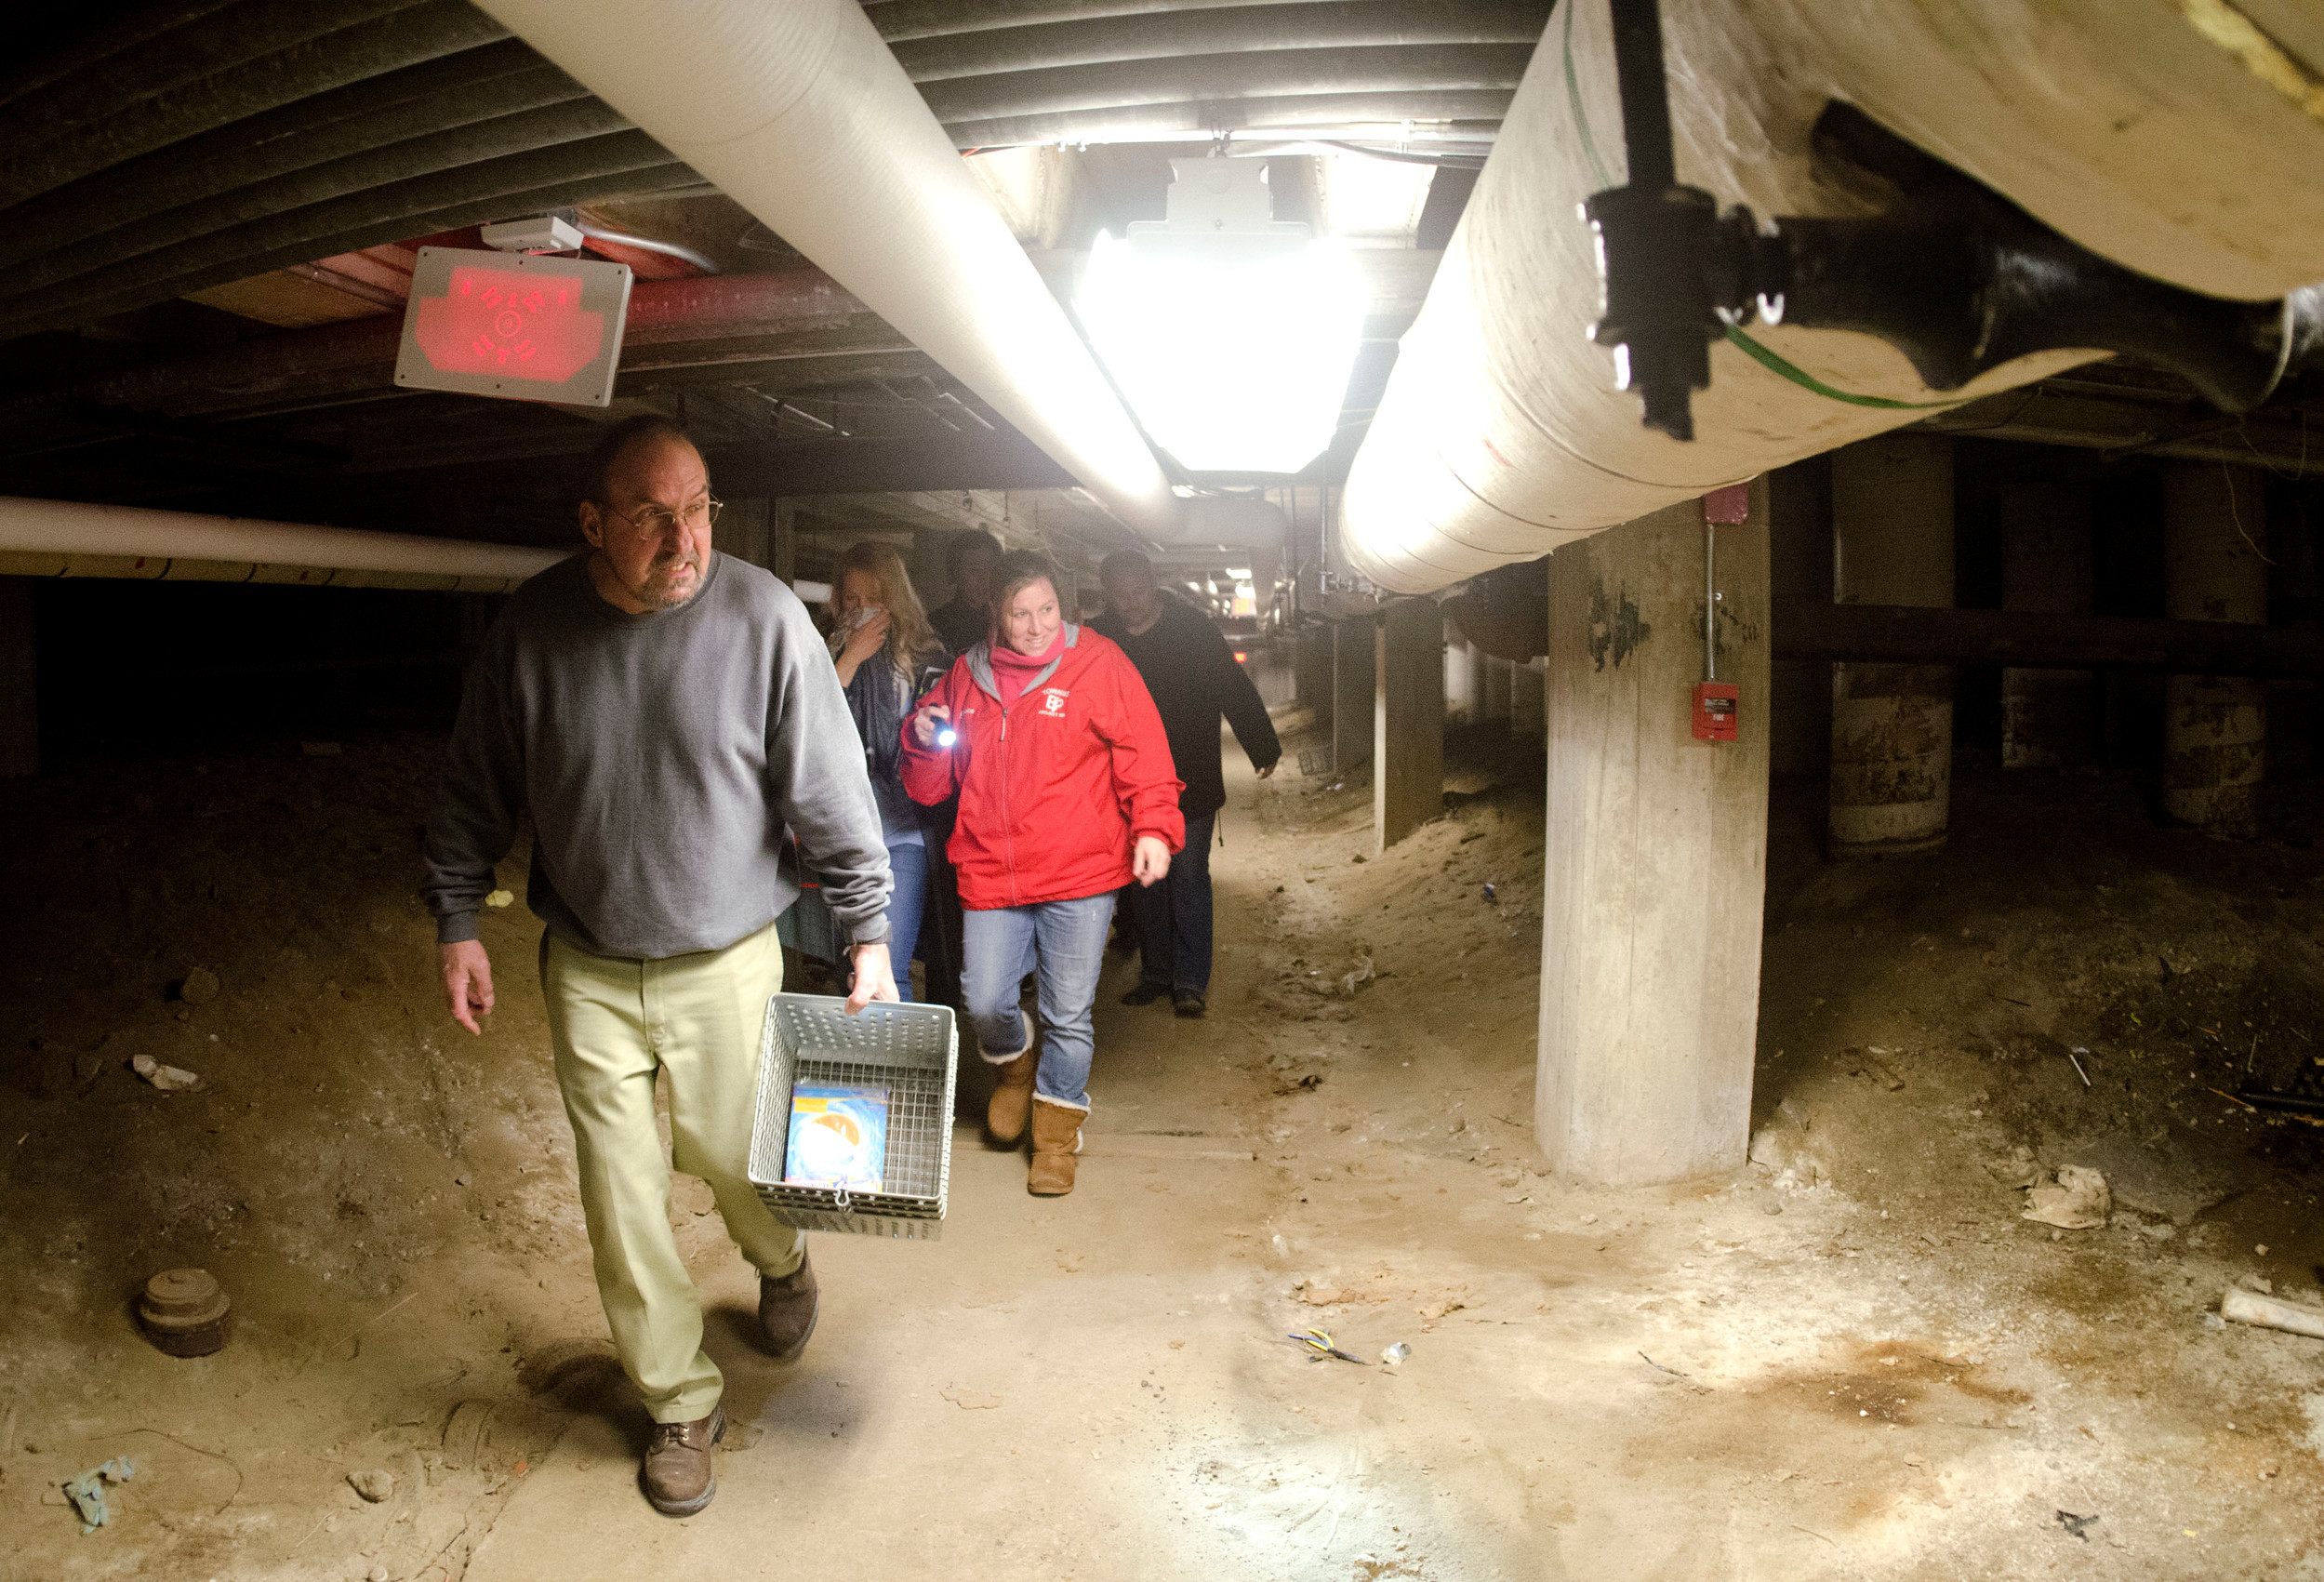 School committee members Anthony Ferreira and Jessica Beauchaine make their way through a dirt path under the 